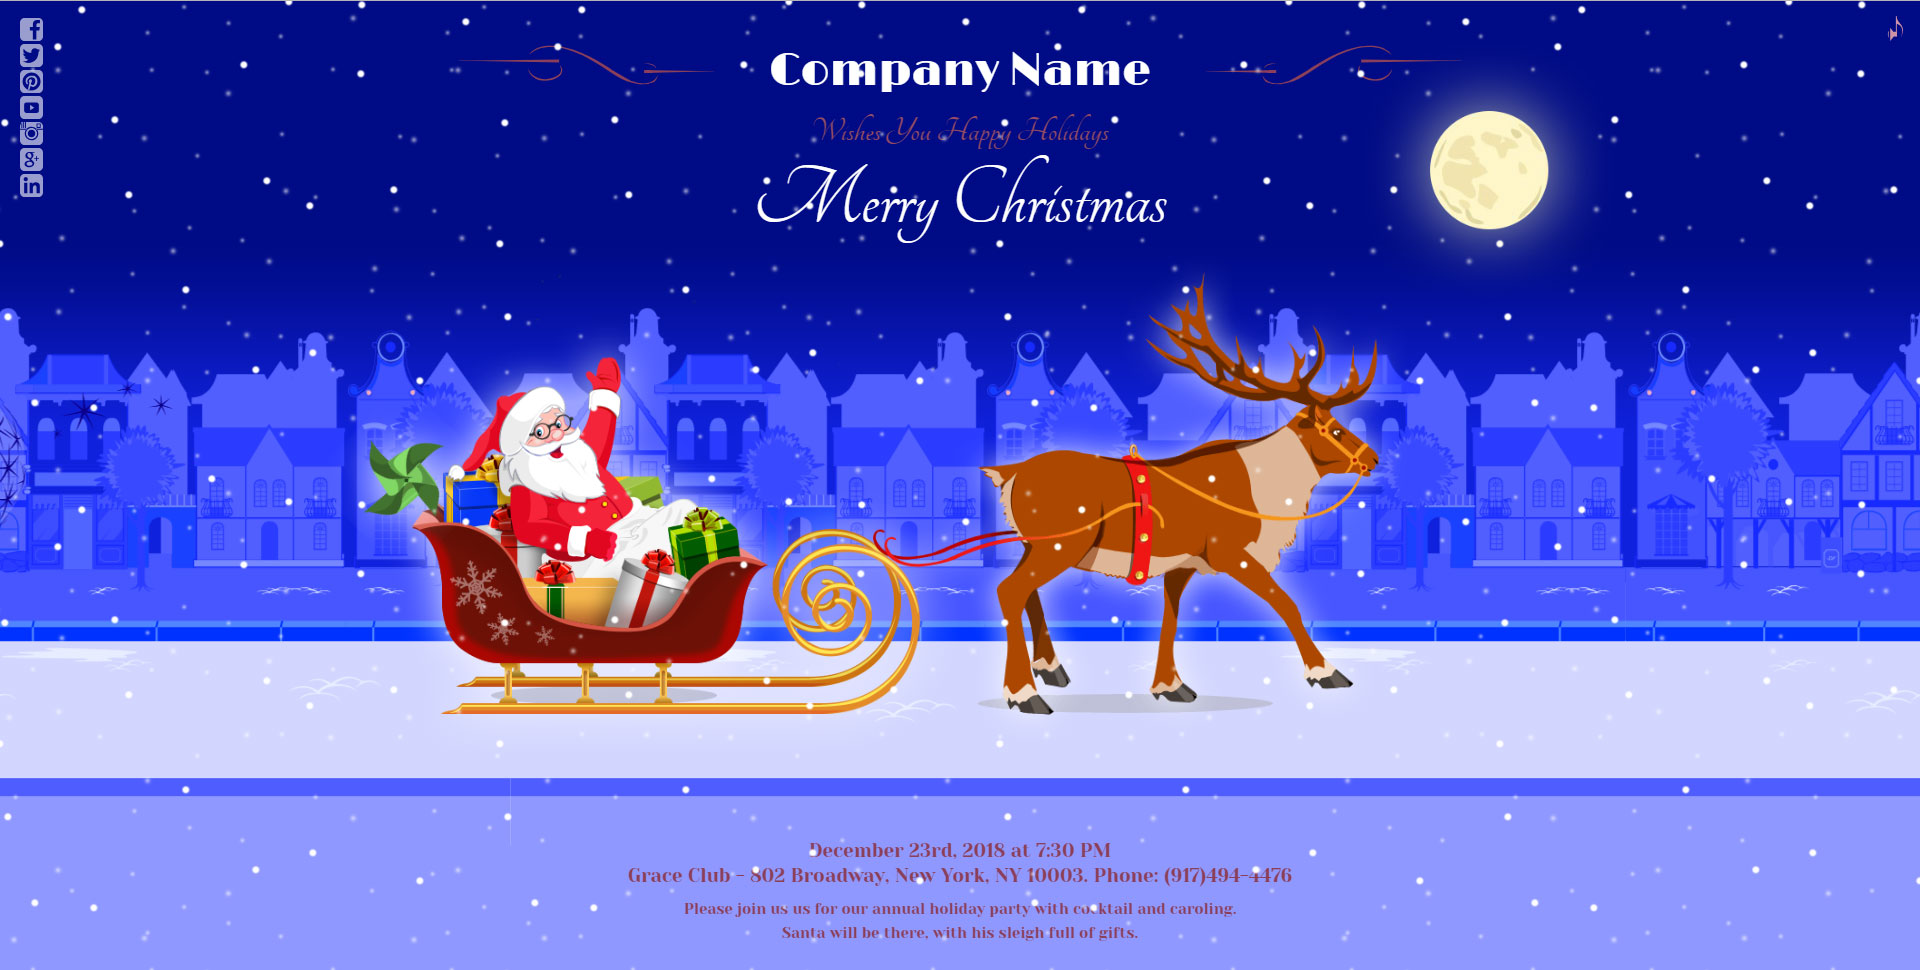 Magic Christmas Card With Animation - WordPress Plugin by LambertGroup